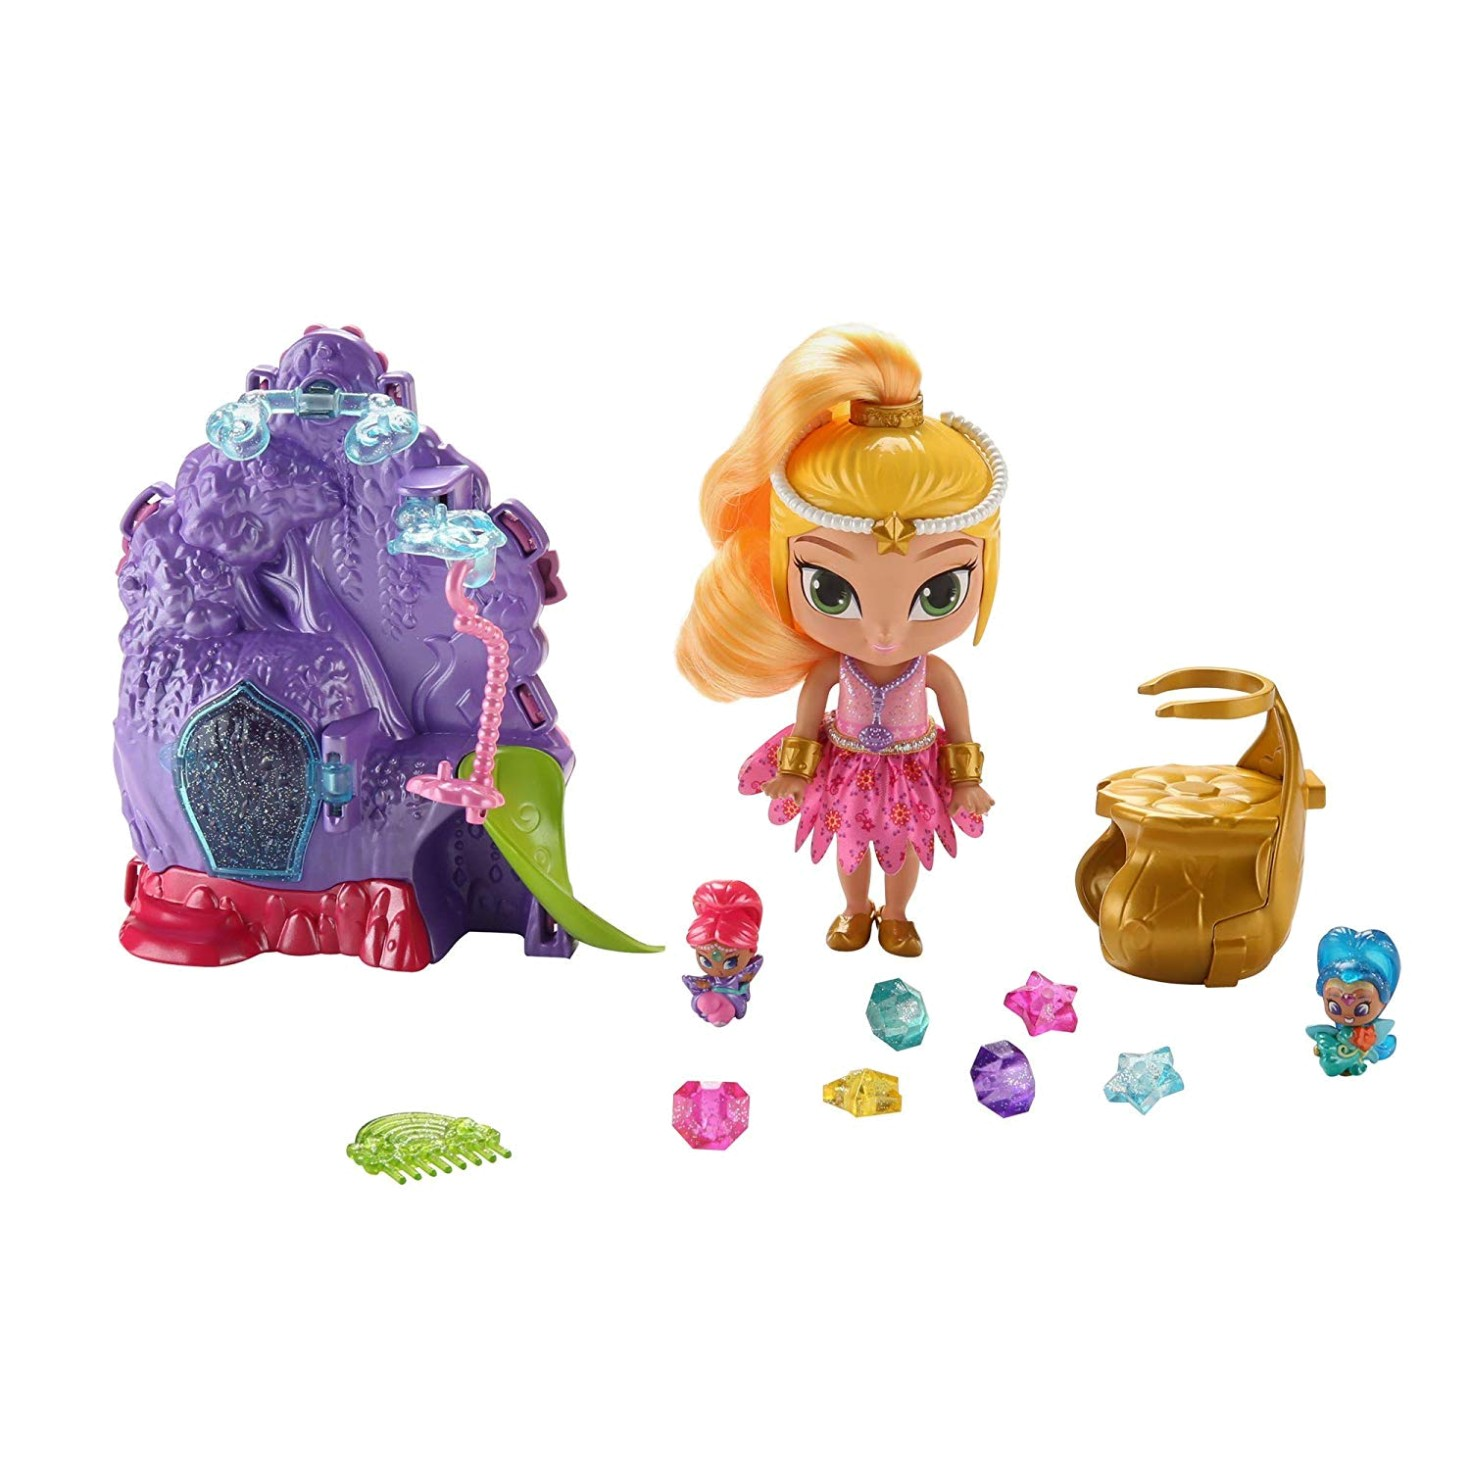 SHIMMER & SHINE LEAH'S VANITY PLAYSET